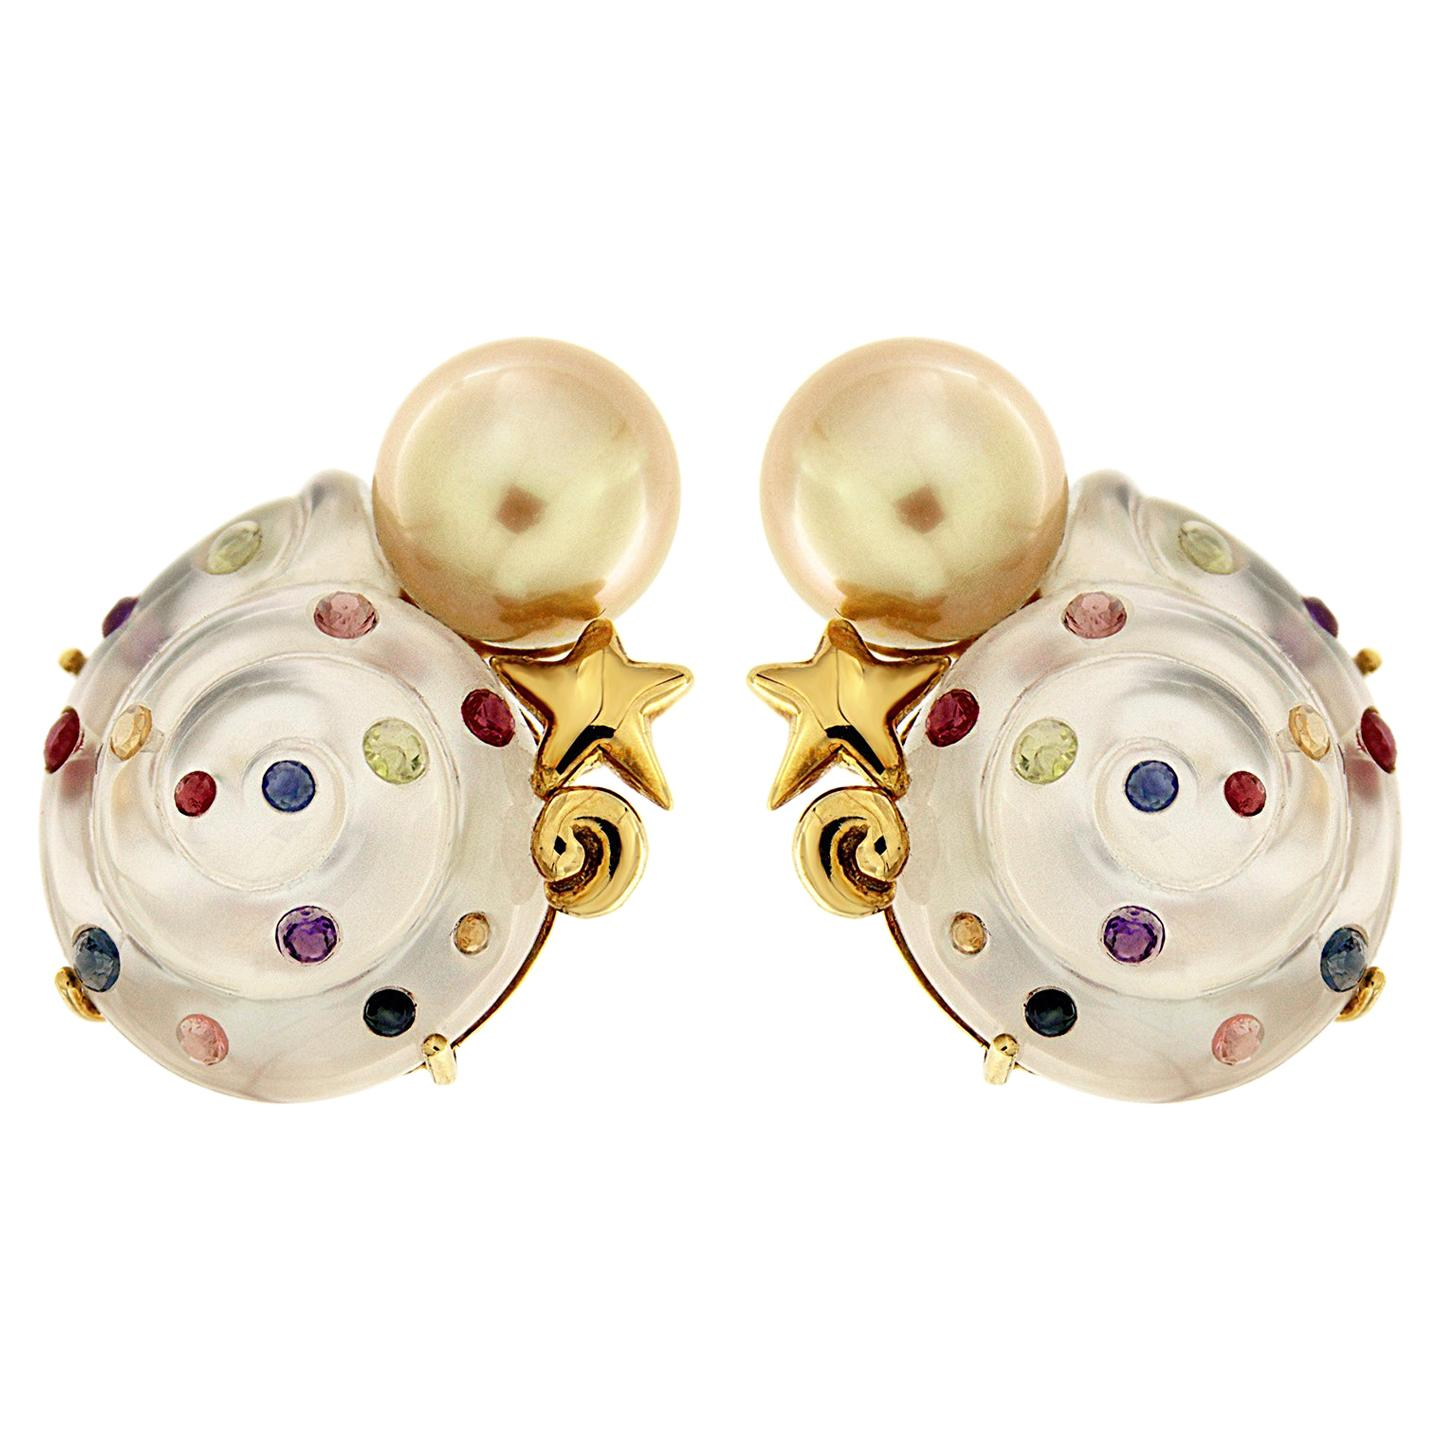 Valentin Magro Carved Crystal Pearl Colored Gemstone Earrings